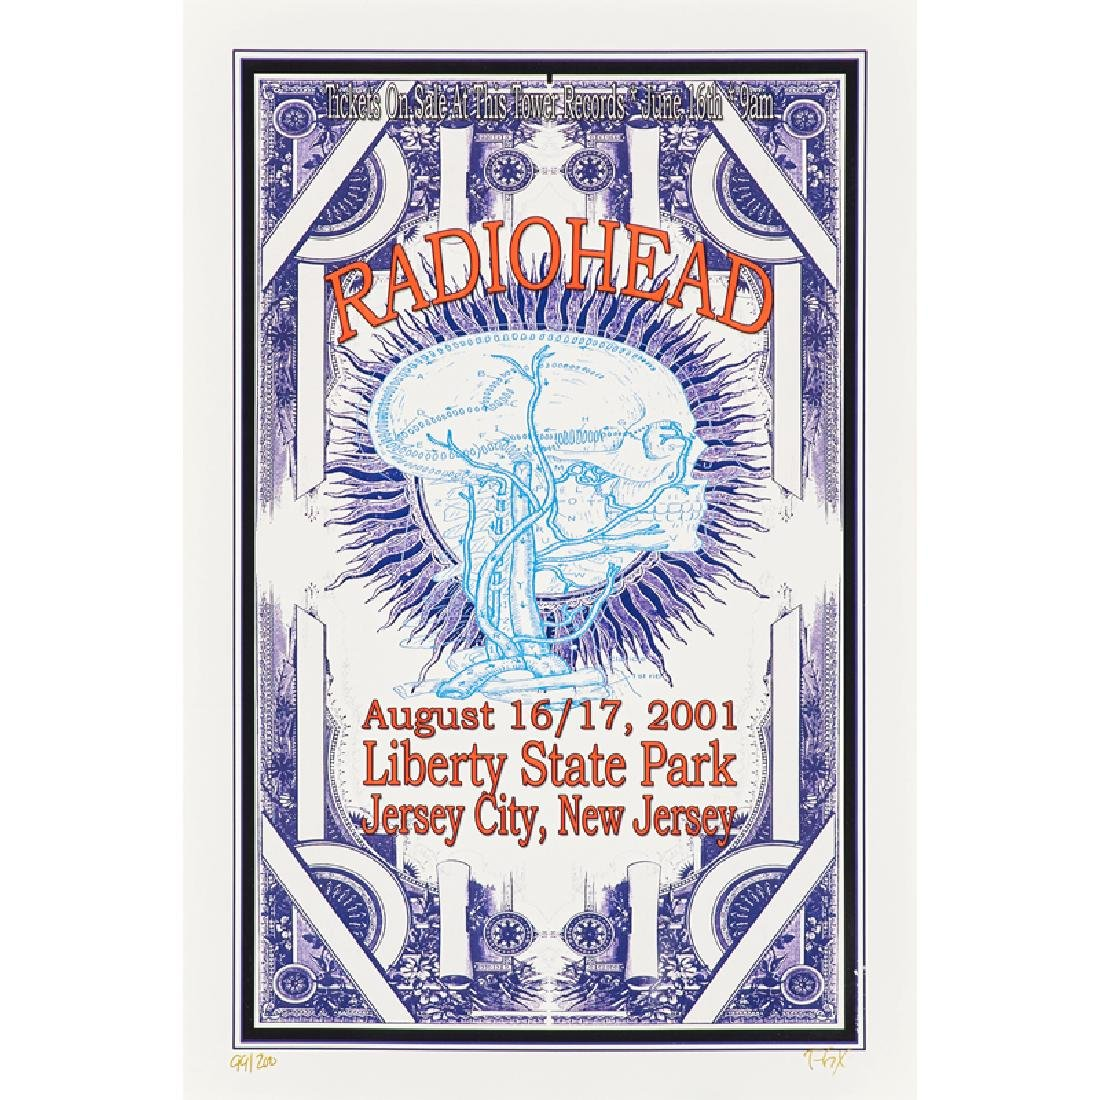 COLLECTION OF CONTEMPORARY CONCERT POSTERS